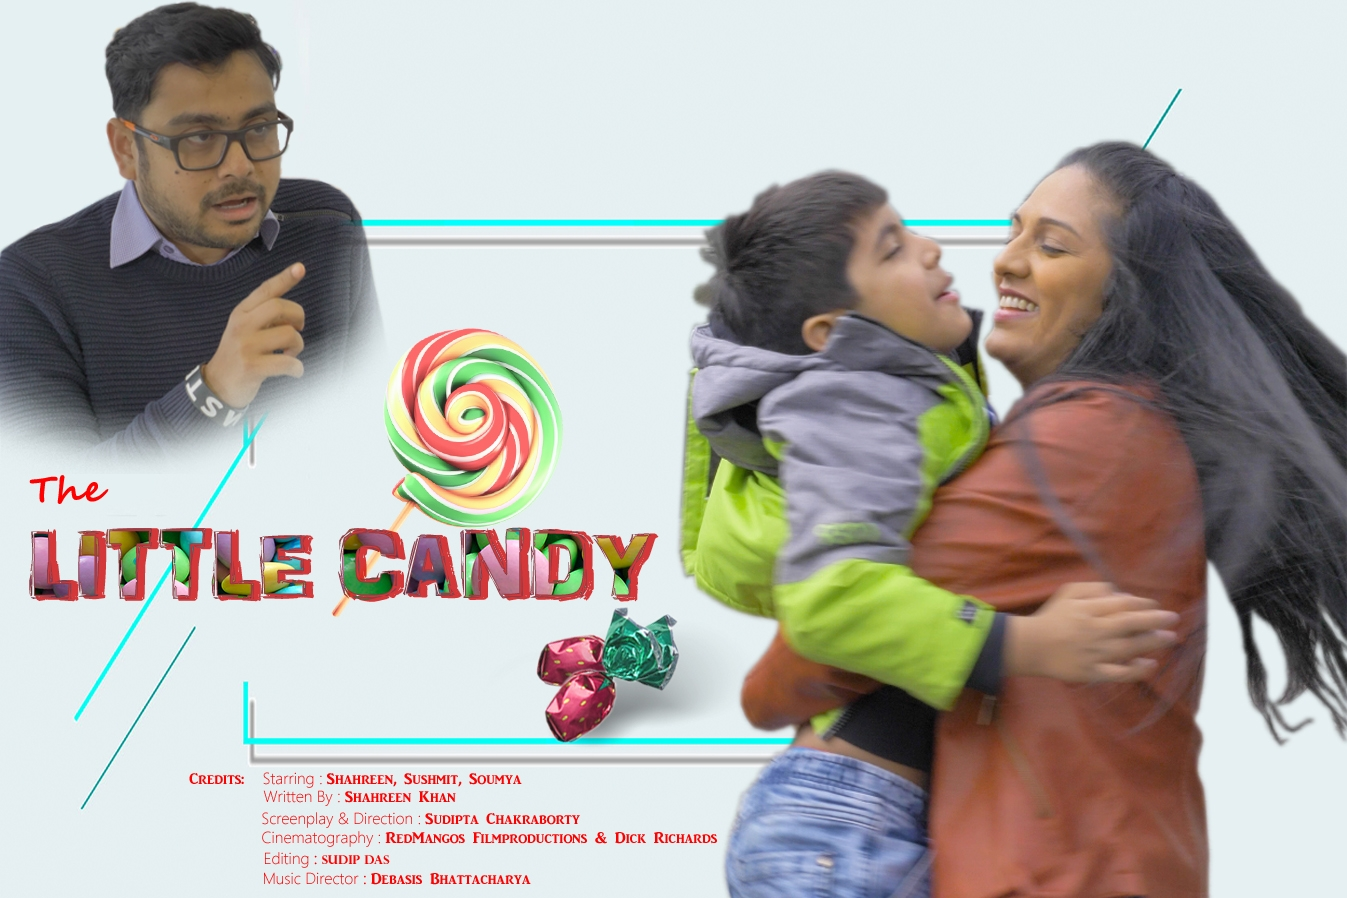 The Little Candy